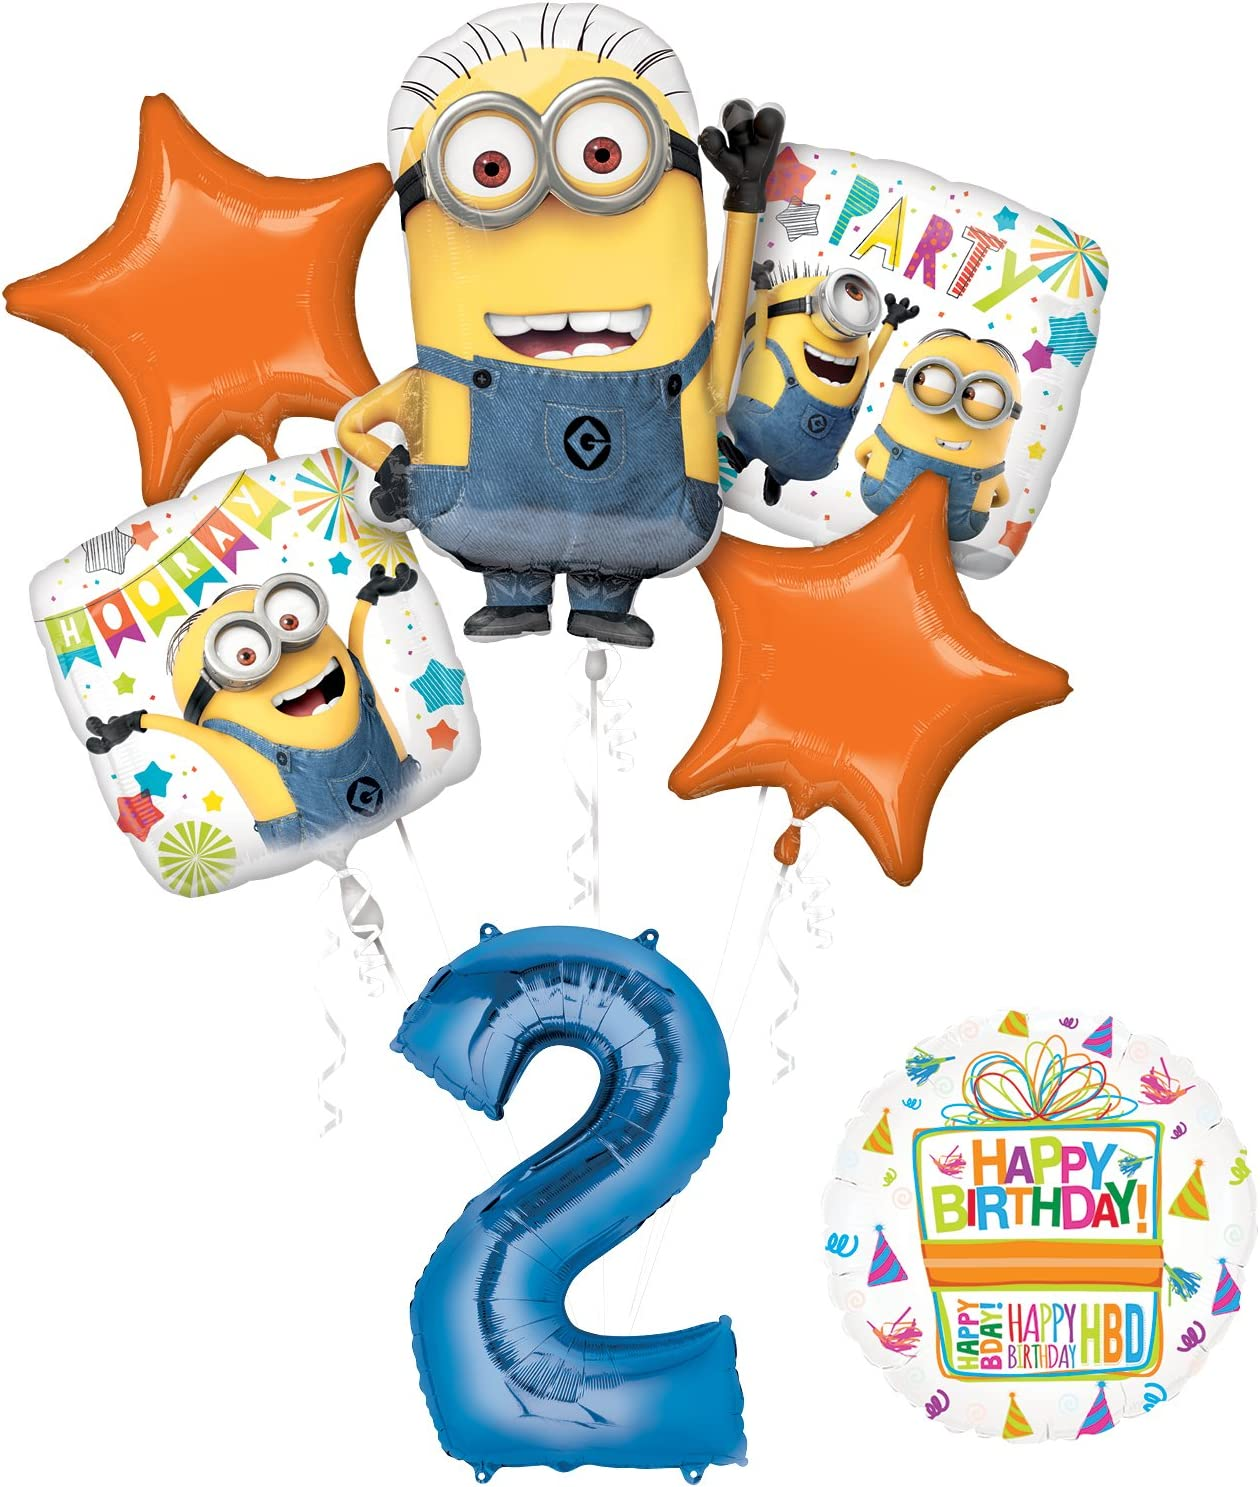 Mayflower Products Despicable Me 3 Minions 2nd Birthday Party Supplies and balloon Decorations